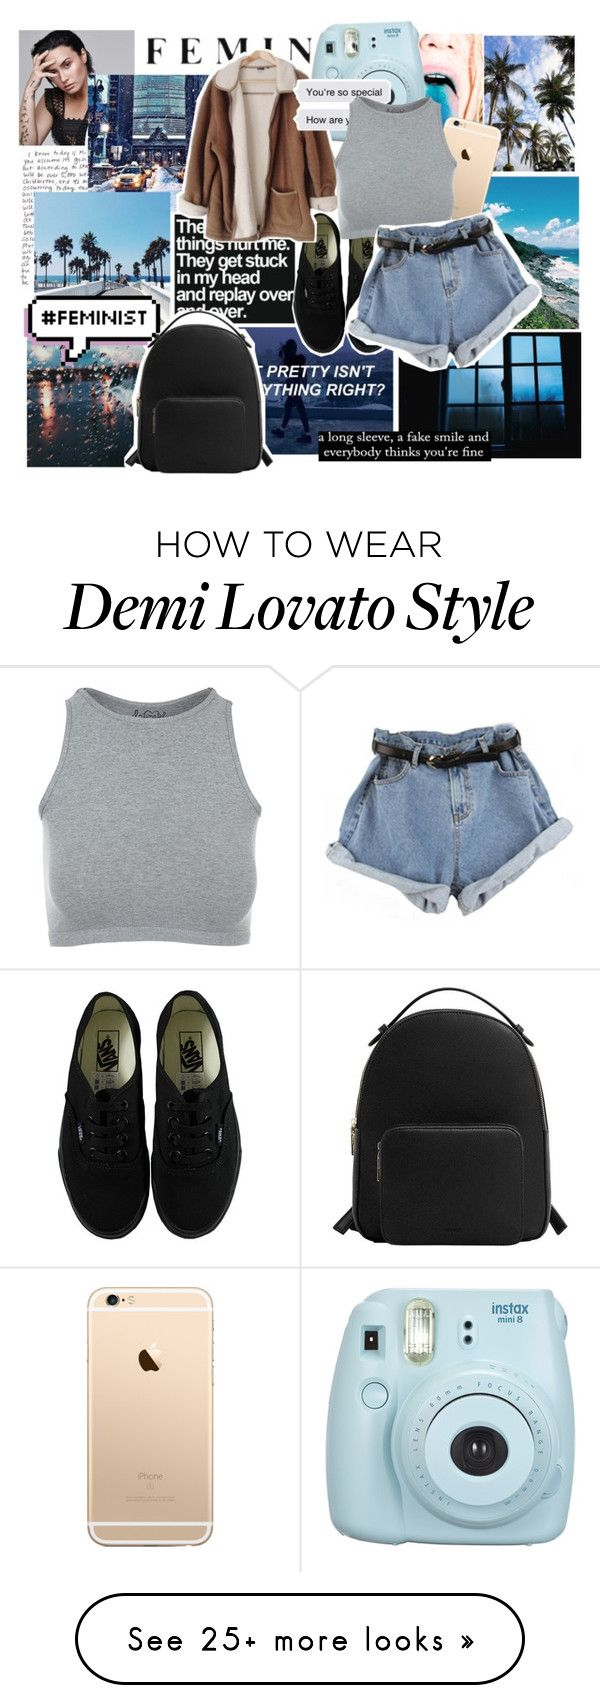 """I'm in love with the shape of you"" by hannancat on Polyvore featuring GET LOST, Vans, Fujifilm, MANGO and Free People"